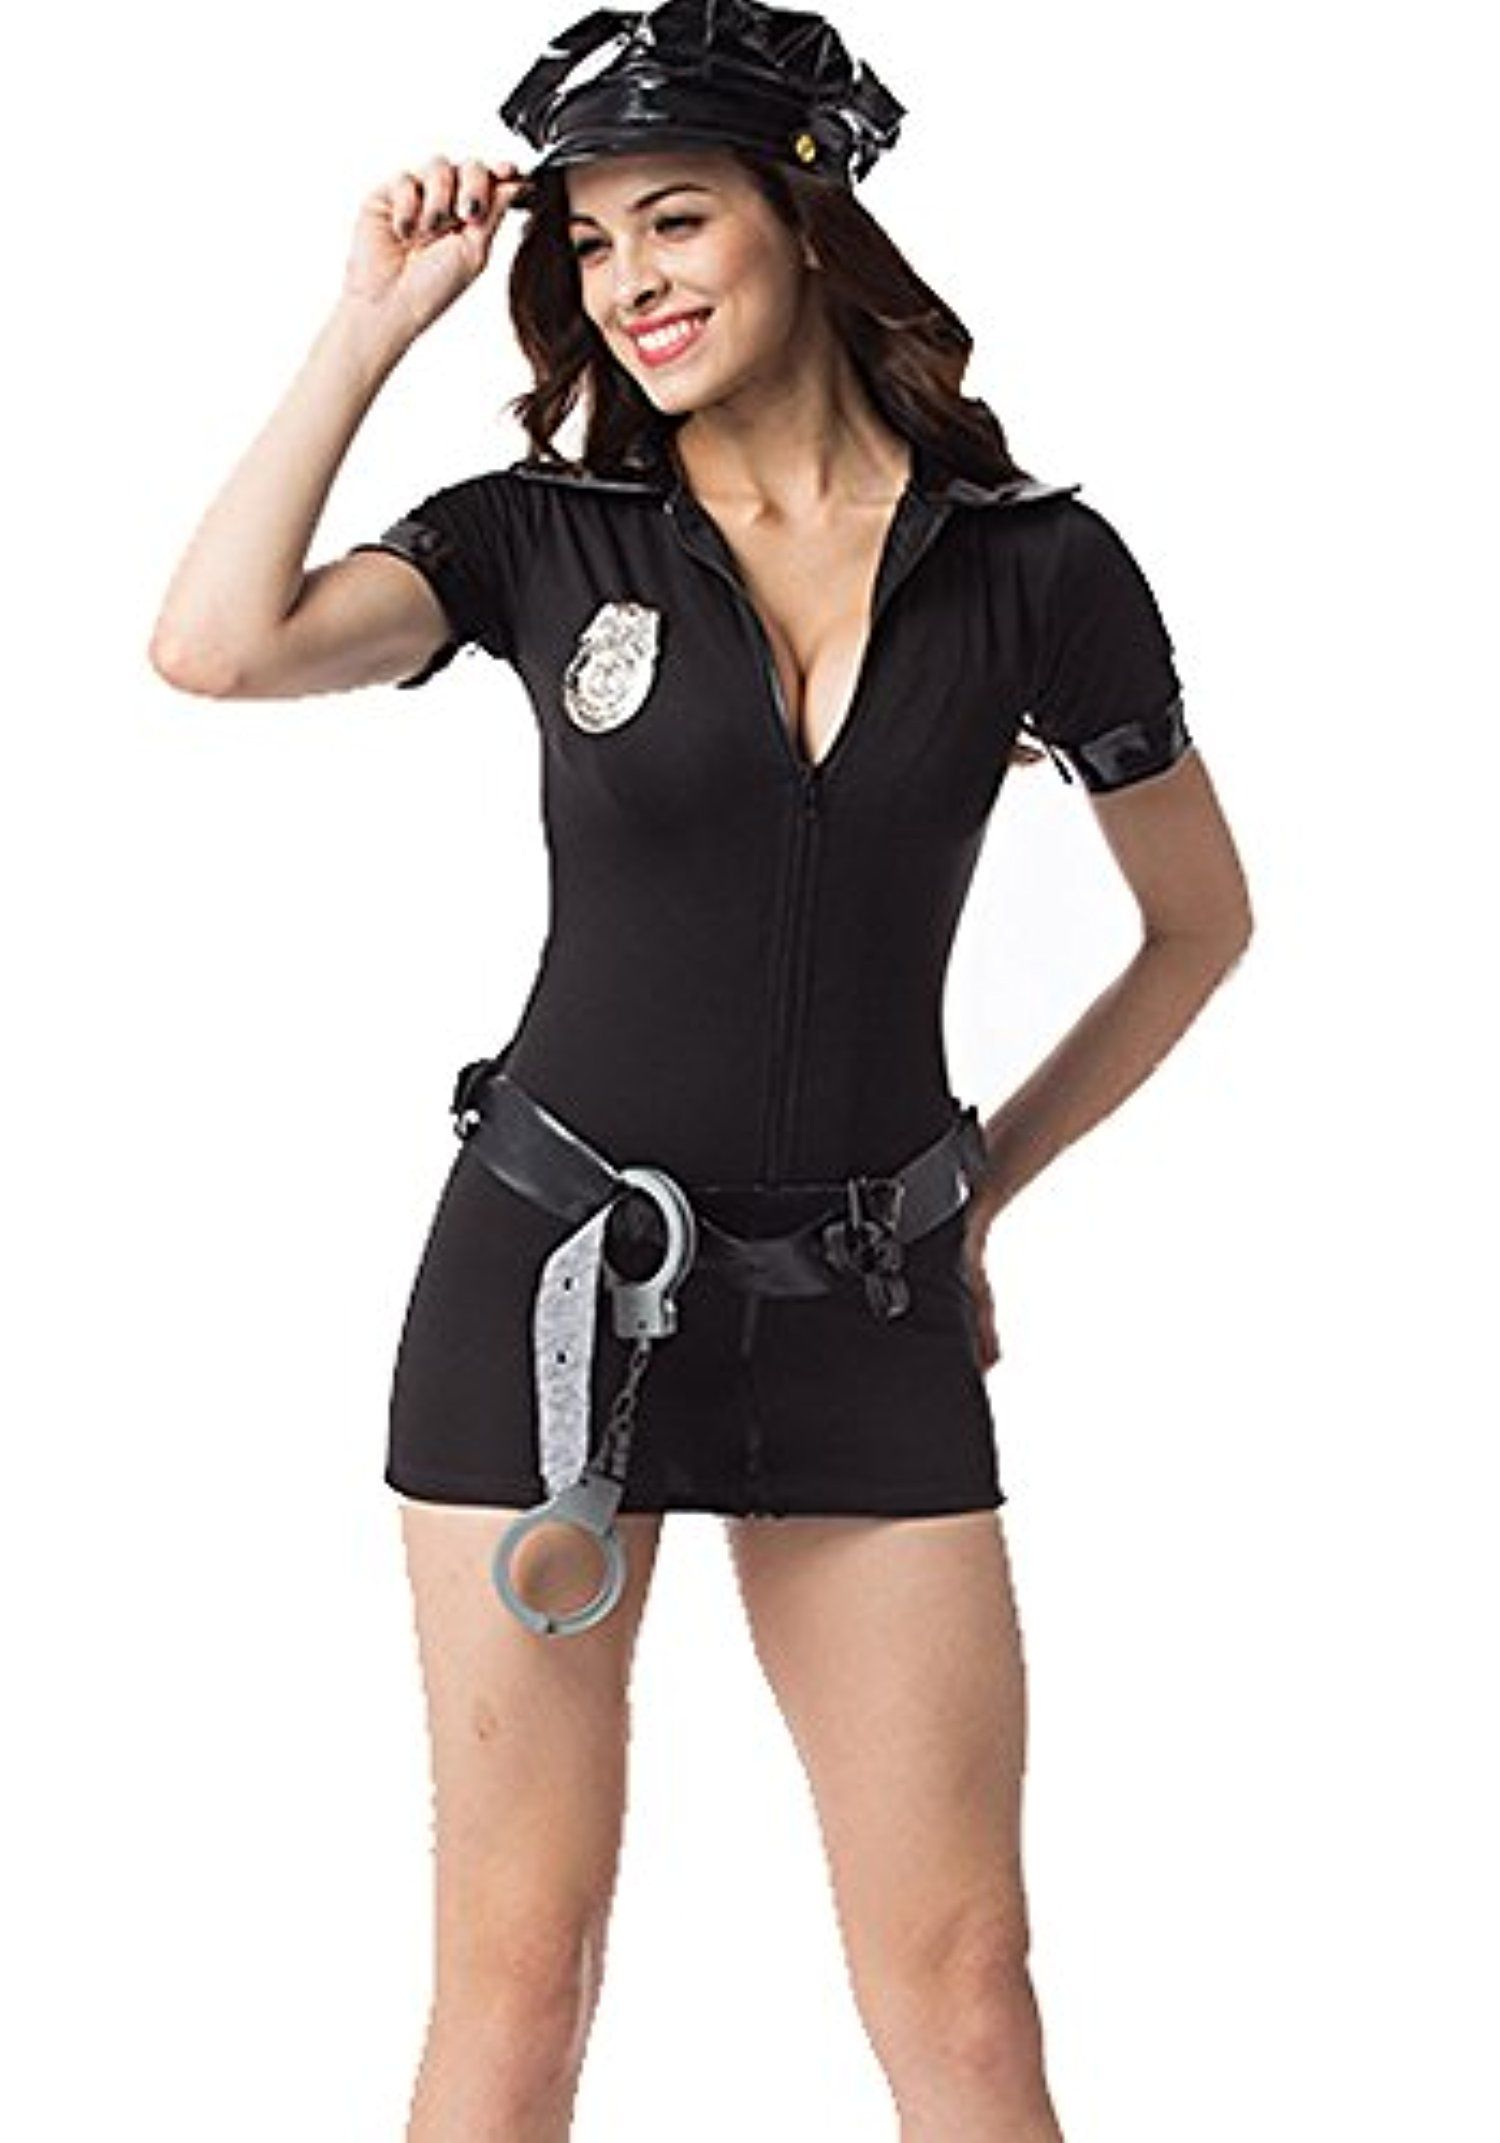 y Miss Demeanor Police Cop Costume Adult Cosplay Halloween